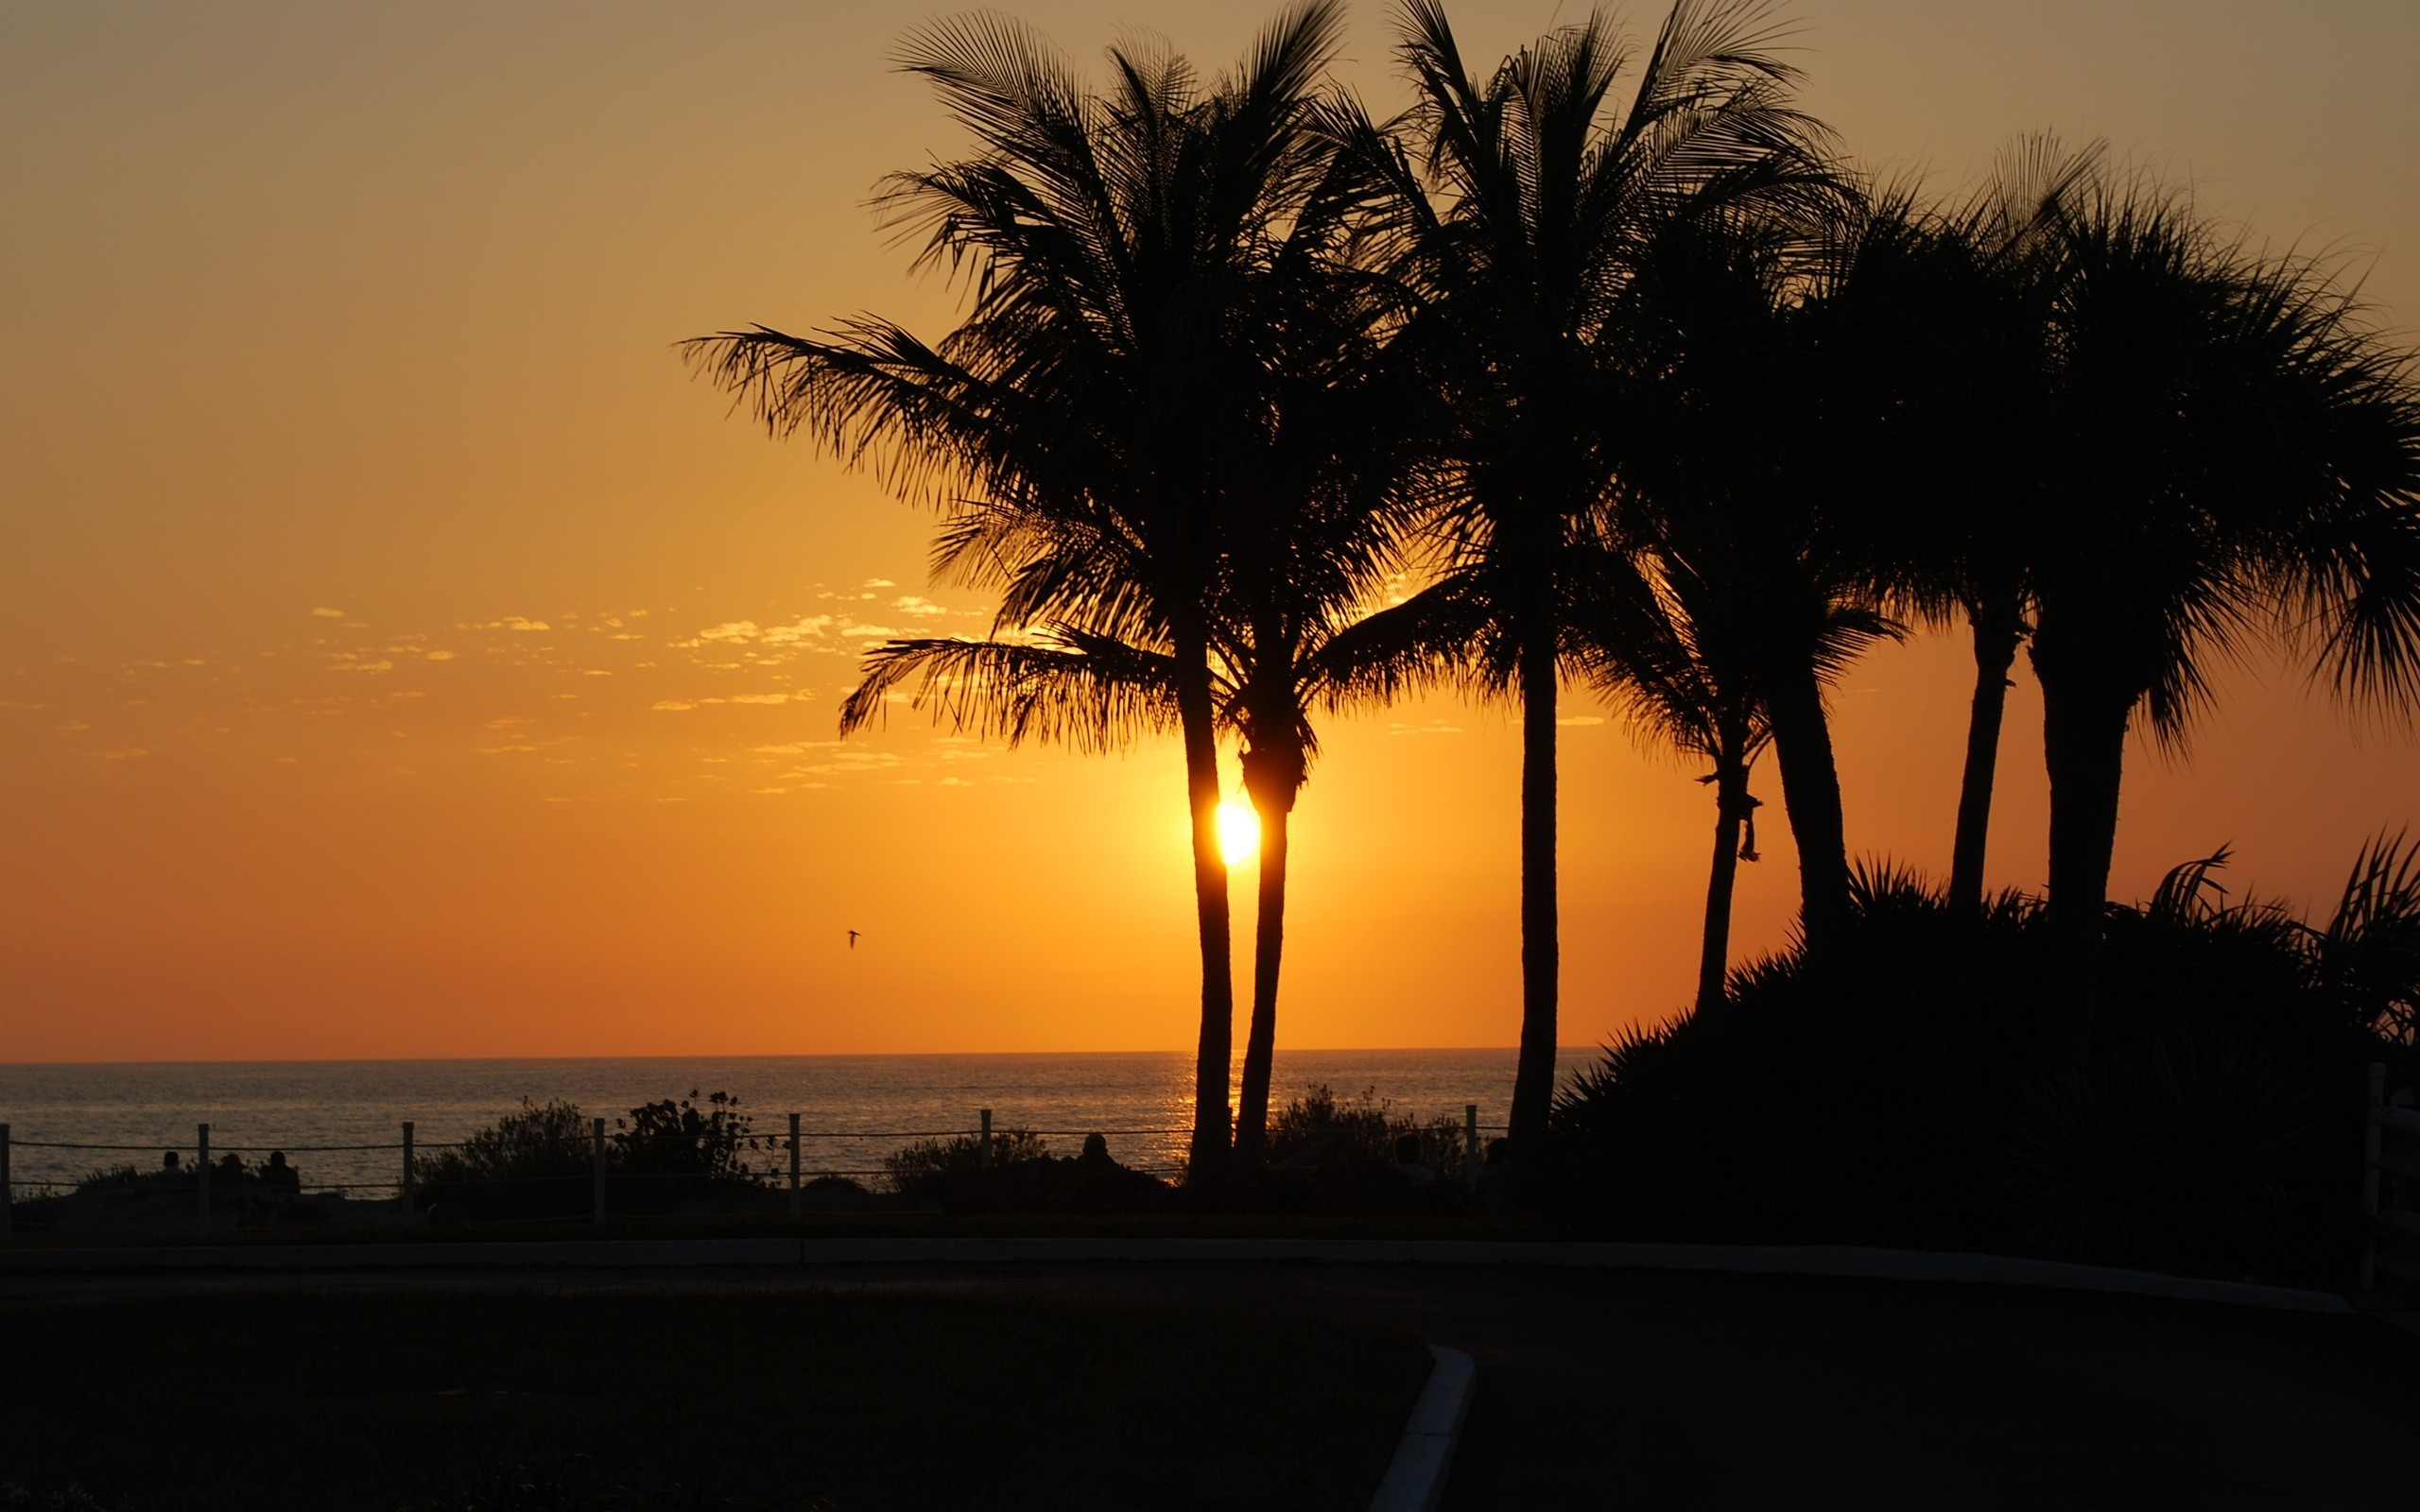 2560x1600 Nature palm trees silhouettes sunlight wallpaper